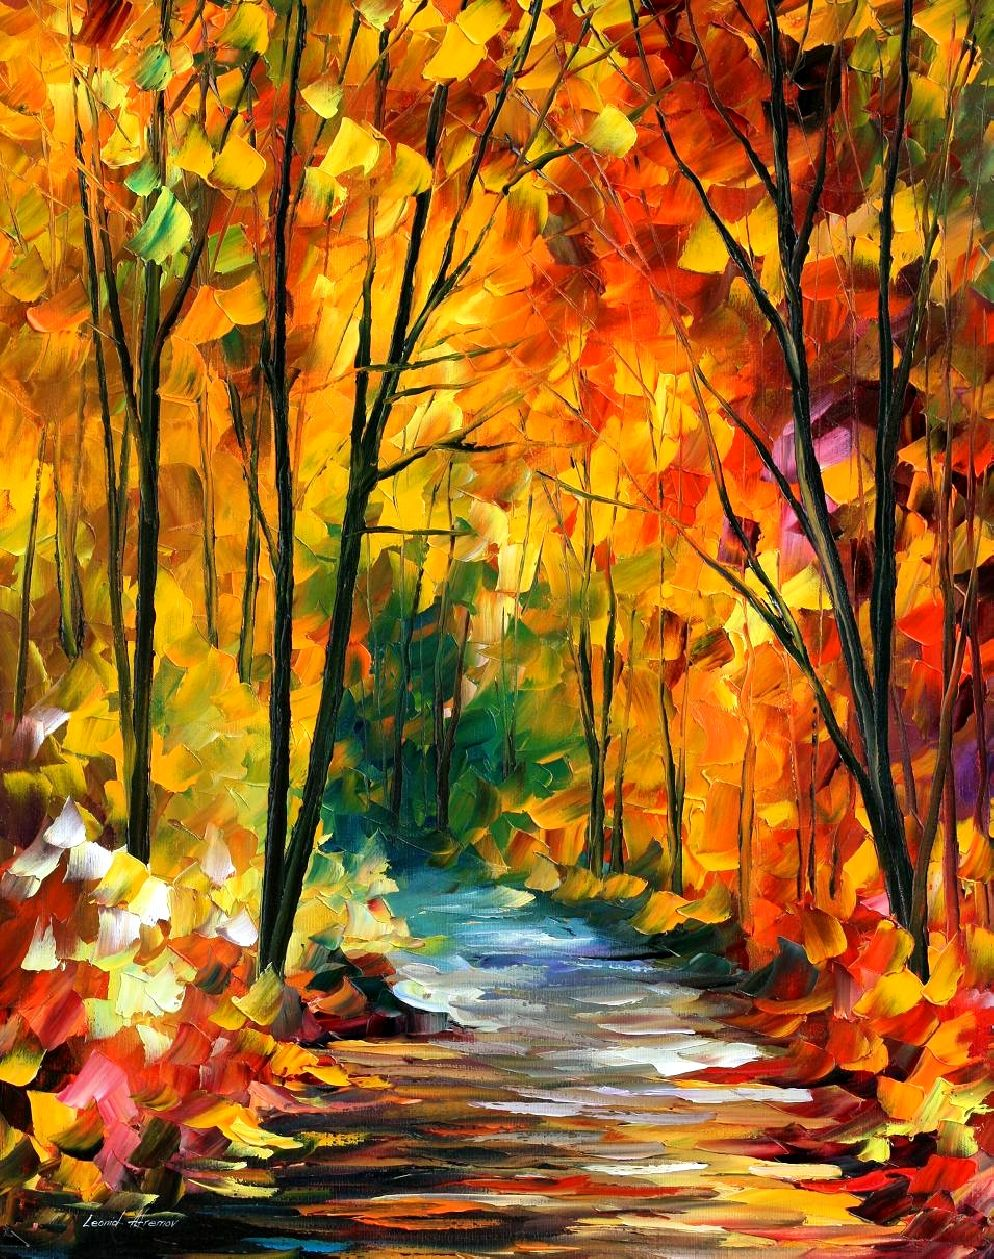 HIDDEN EMOTIONS by Leonid Afremov